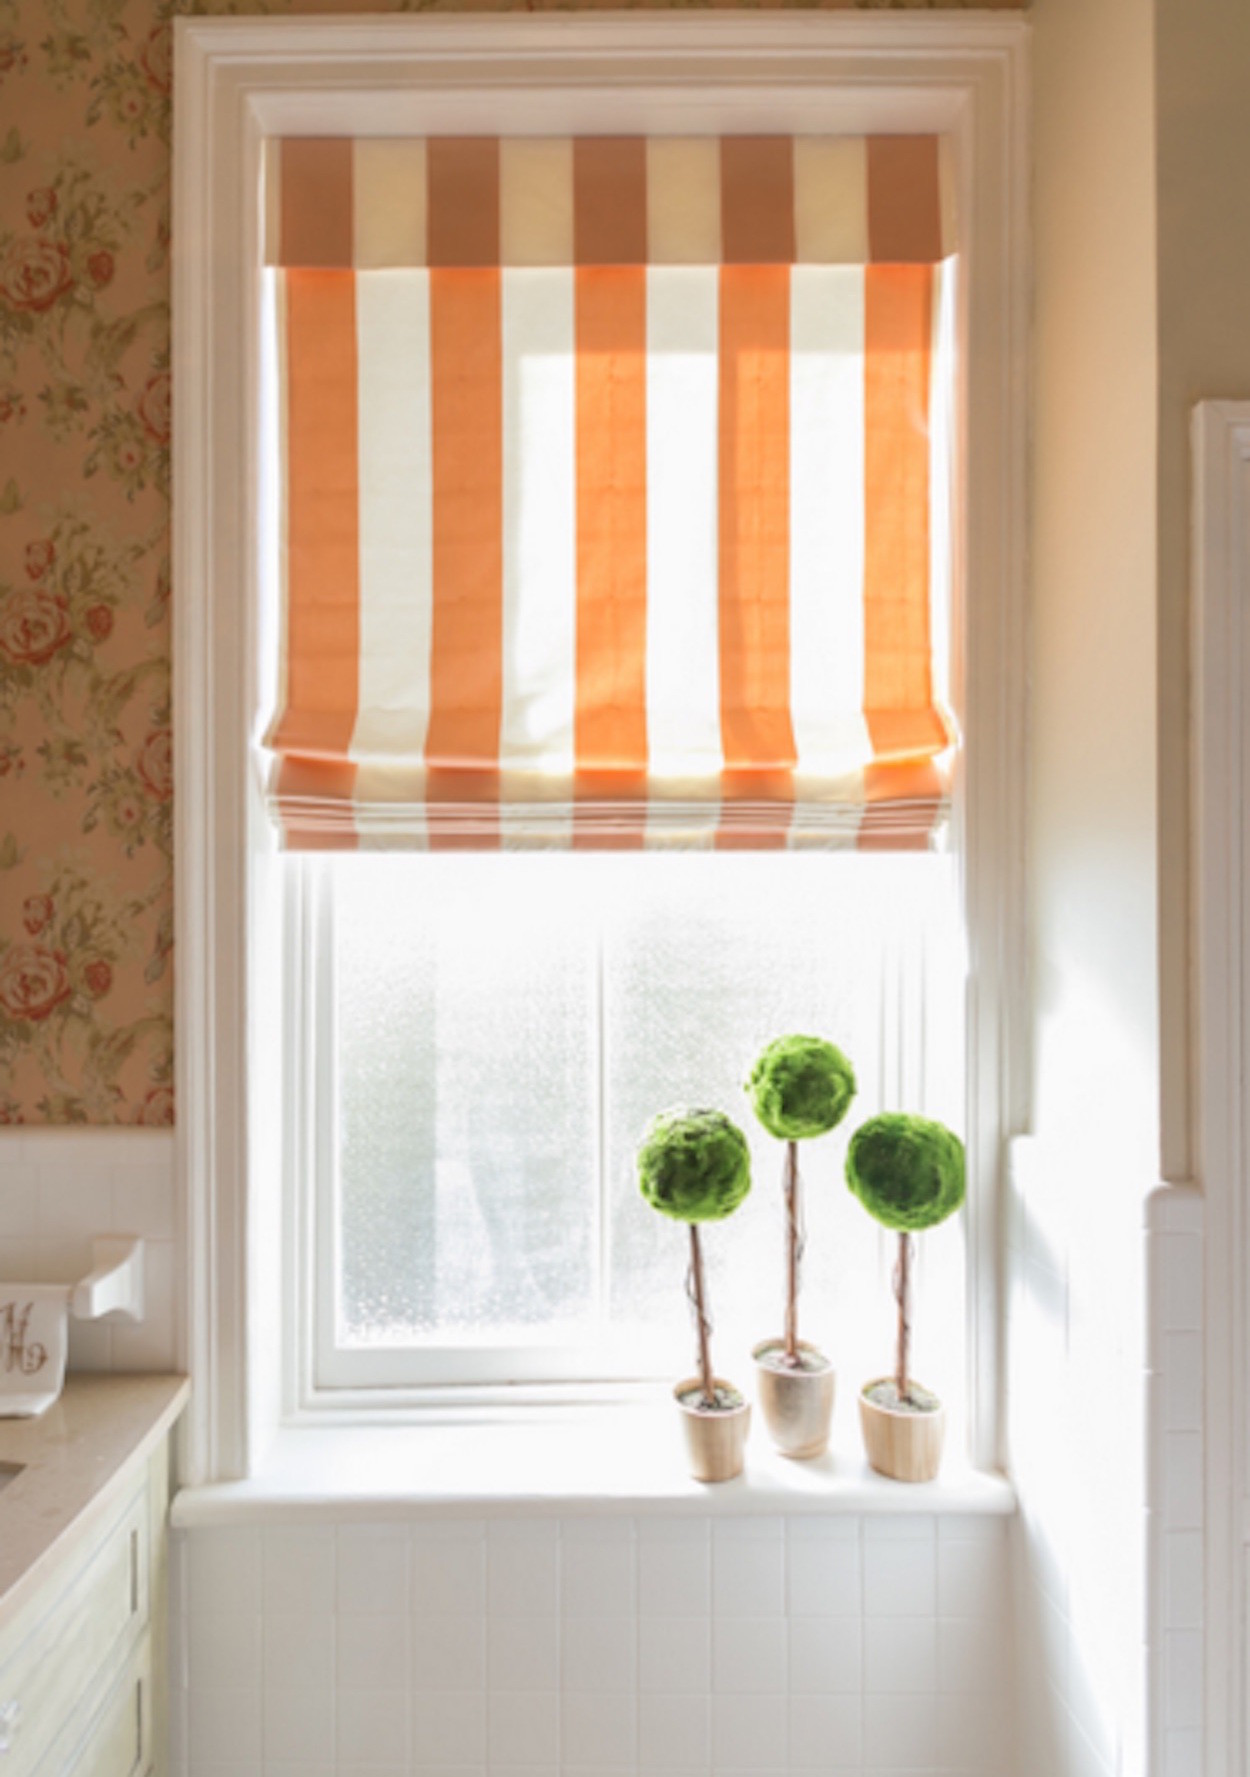 Fenster Bad 7 Different Bathroom Window Treatments You Might Not Have